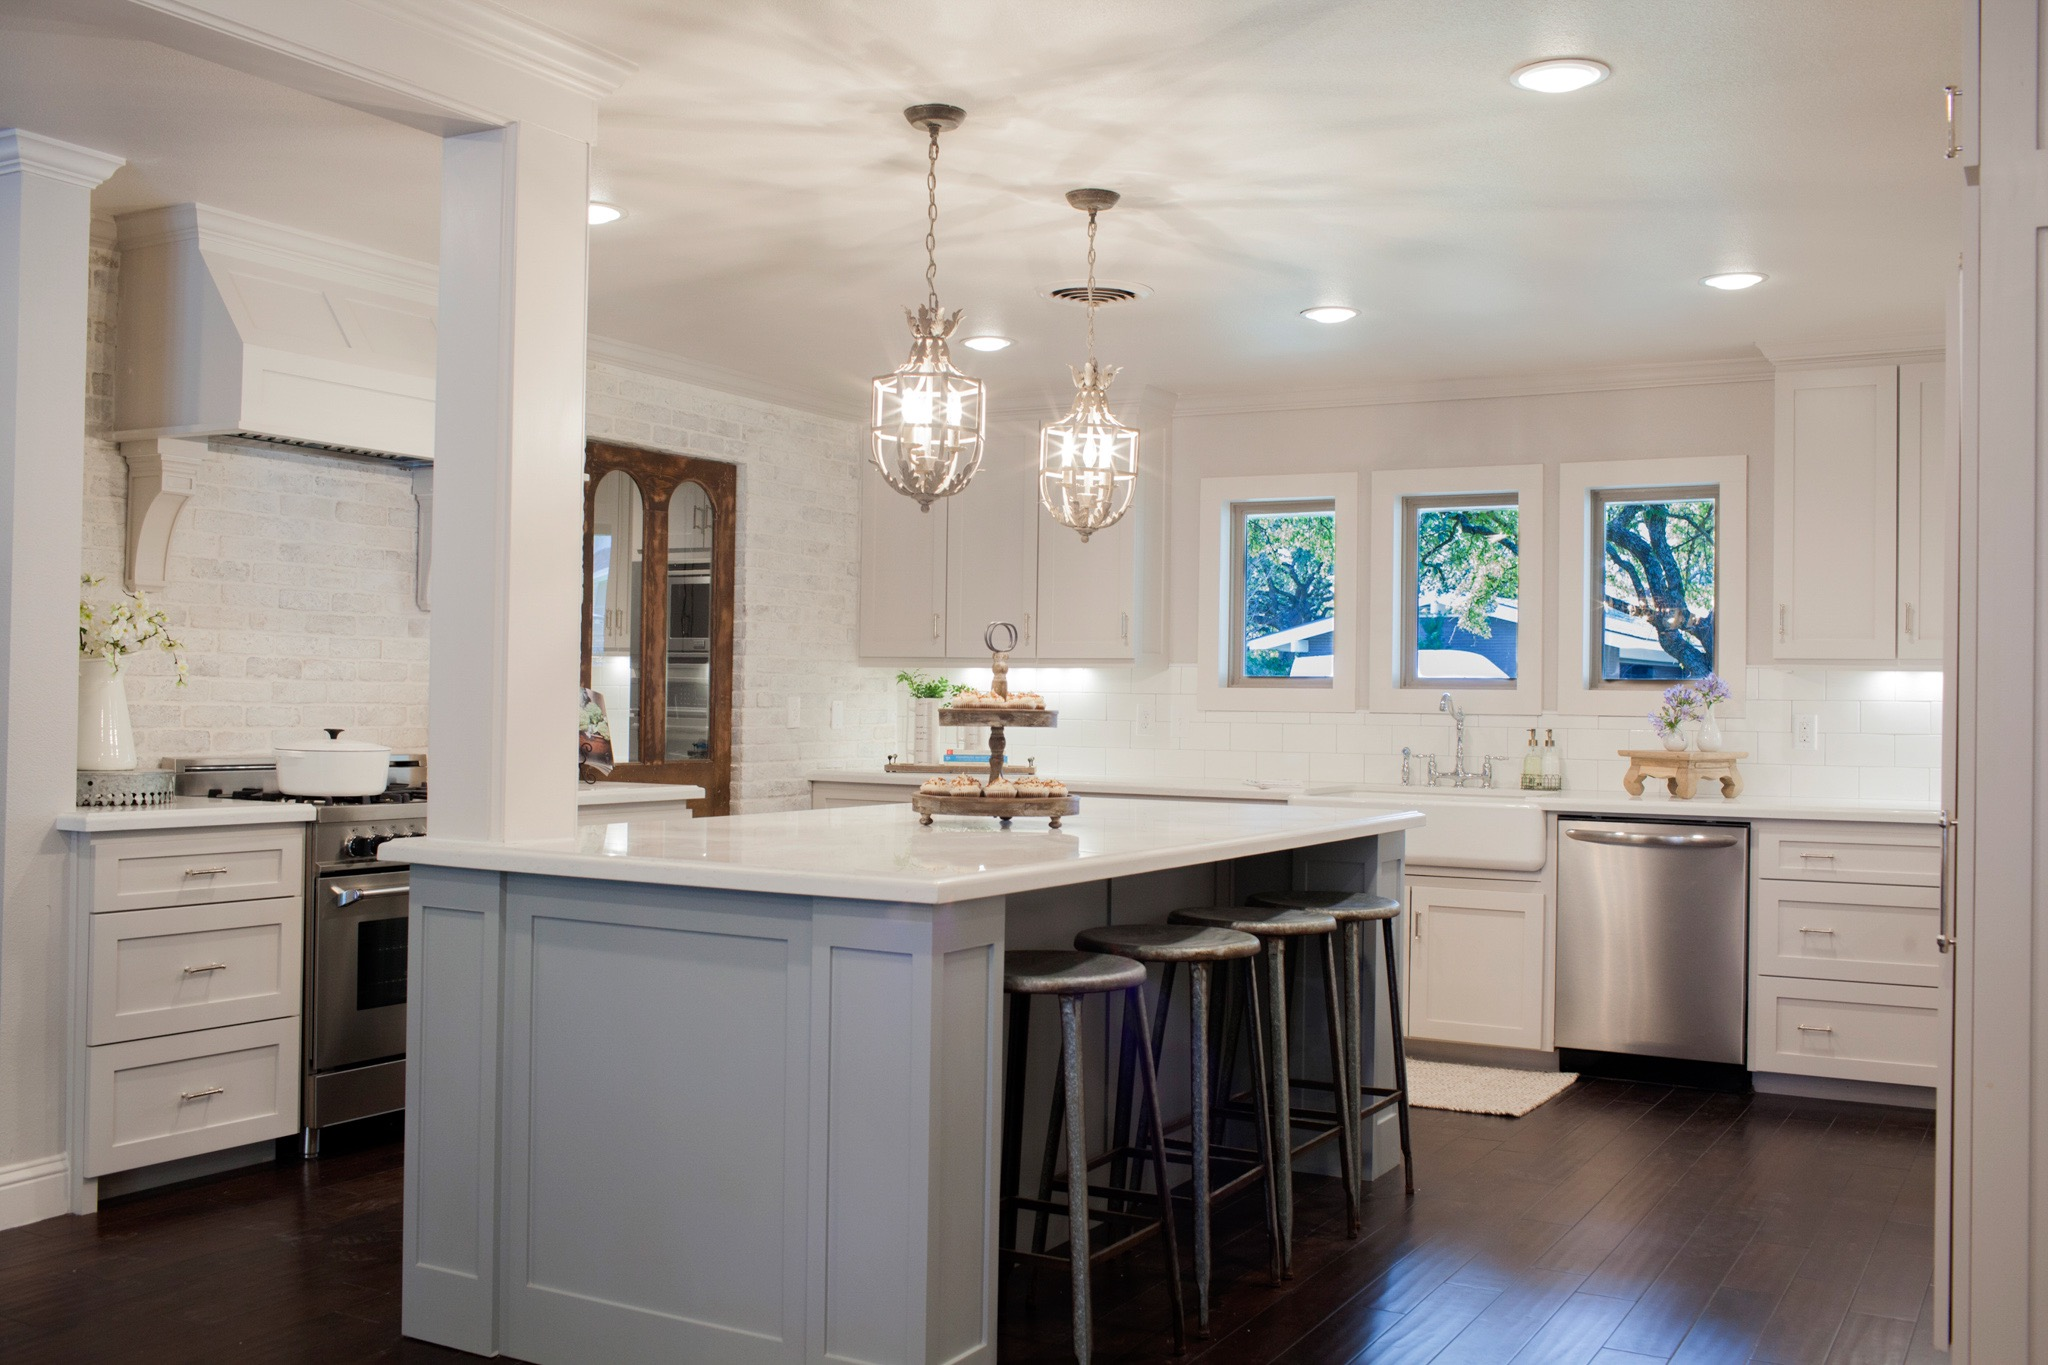 French Country Kitchen With Ceiling And Pendant Lights (View 19 of 39)